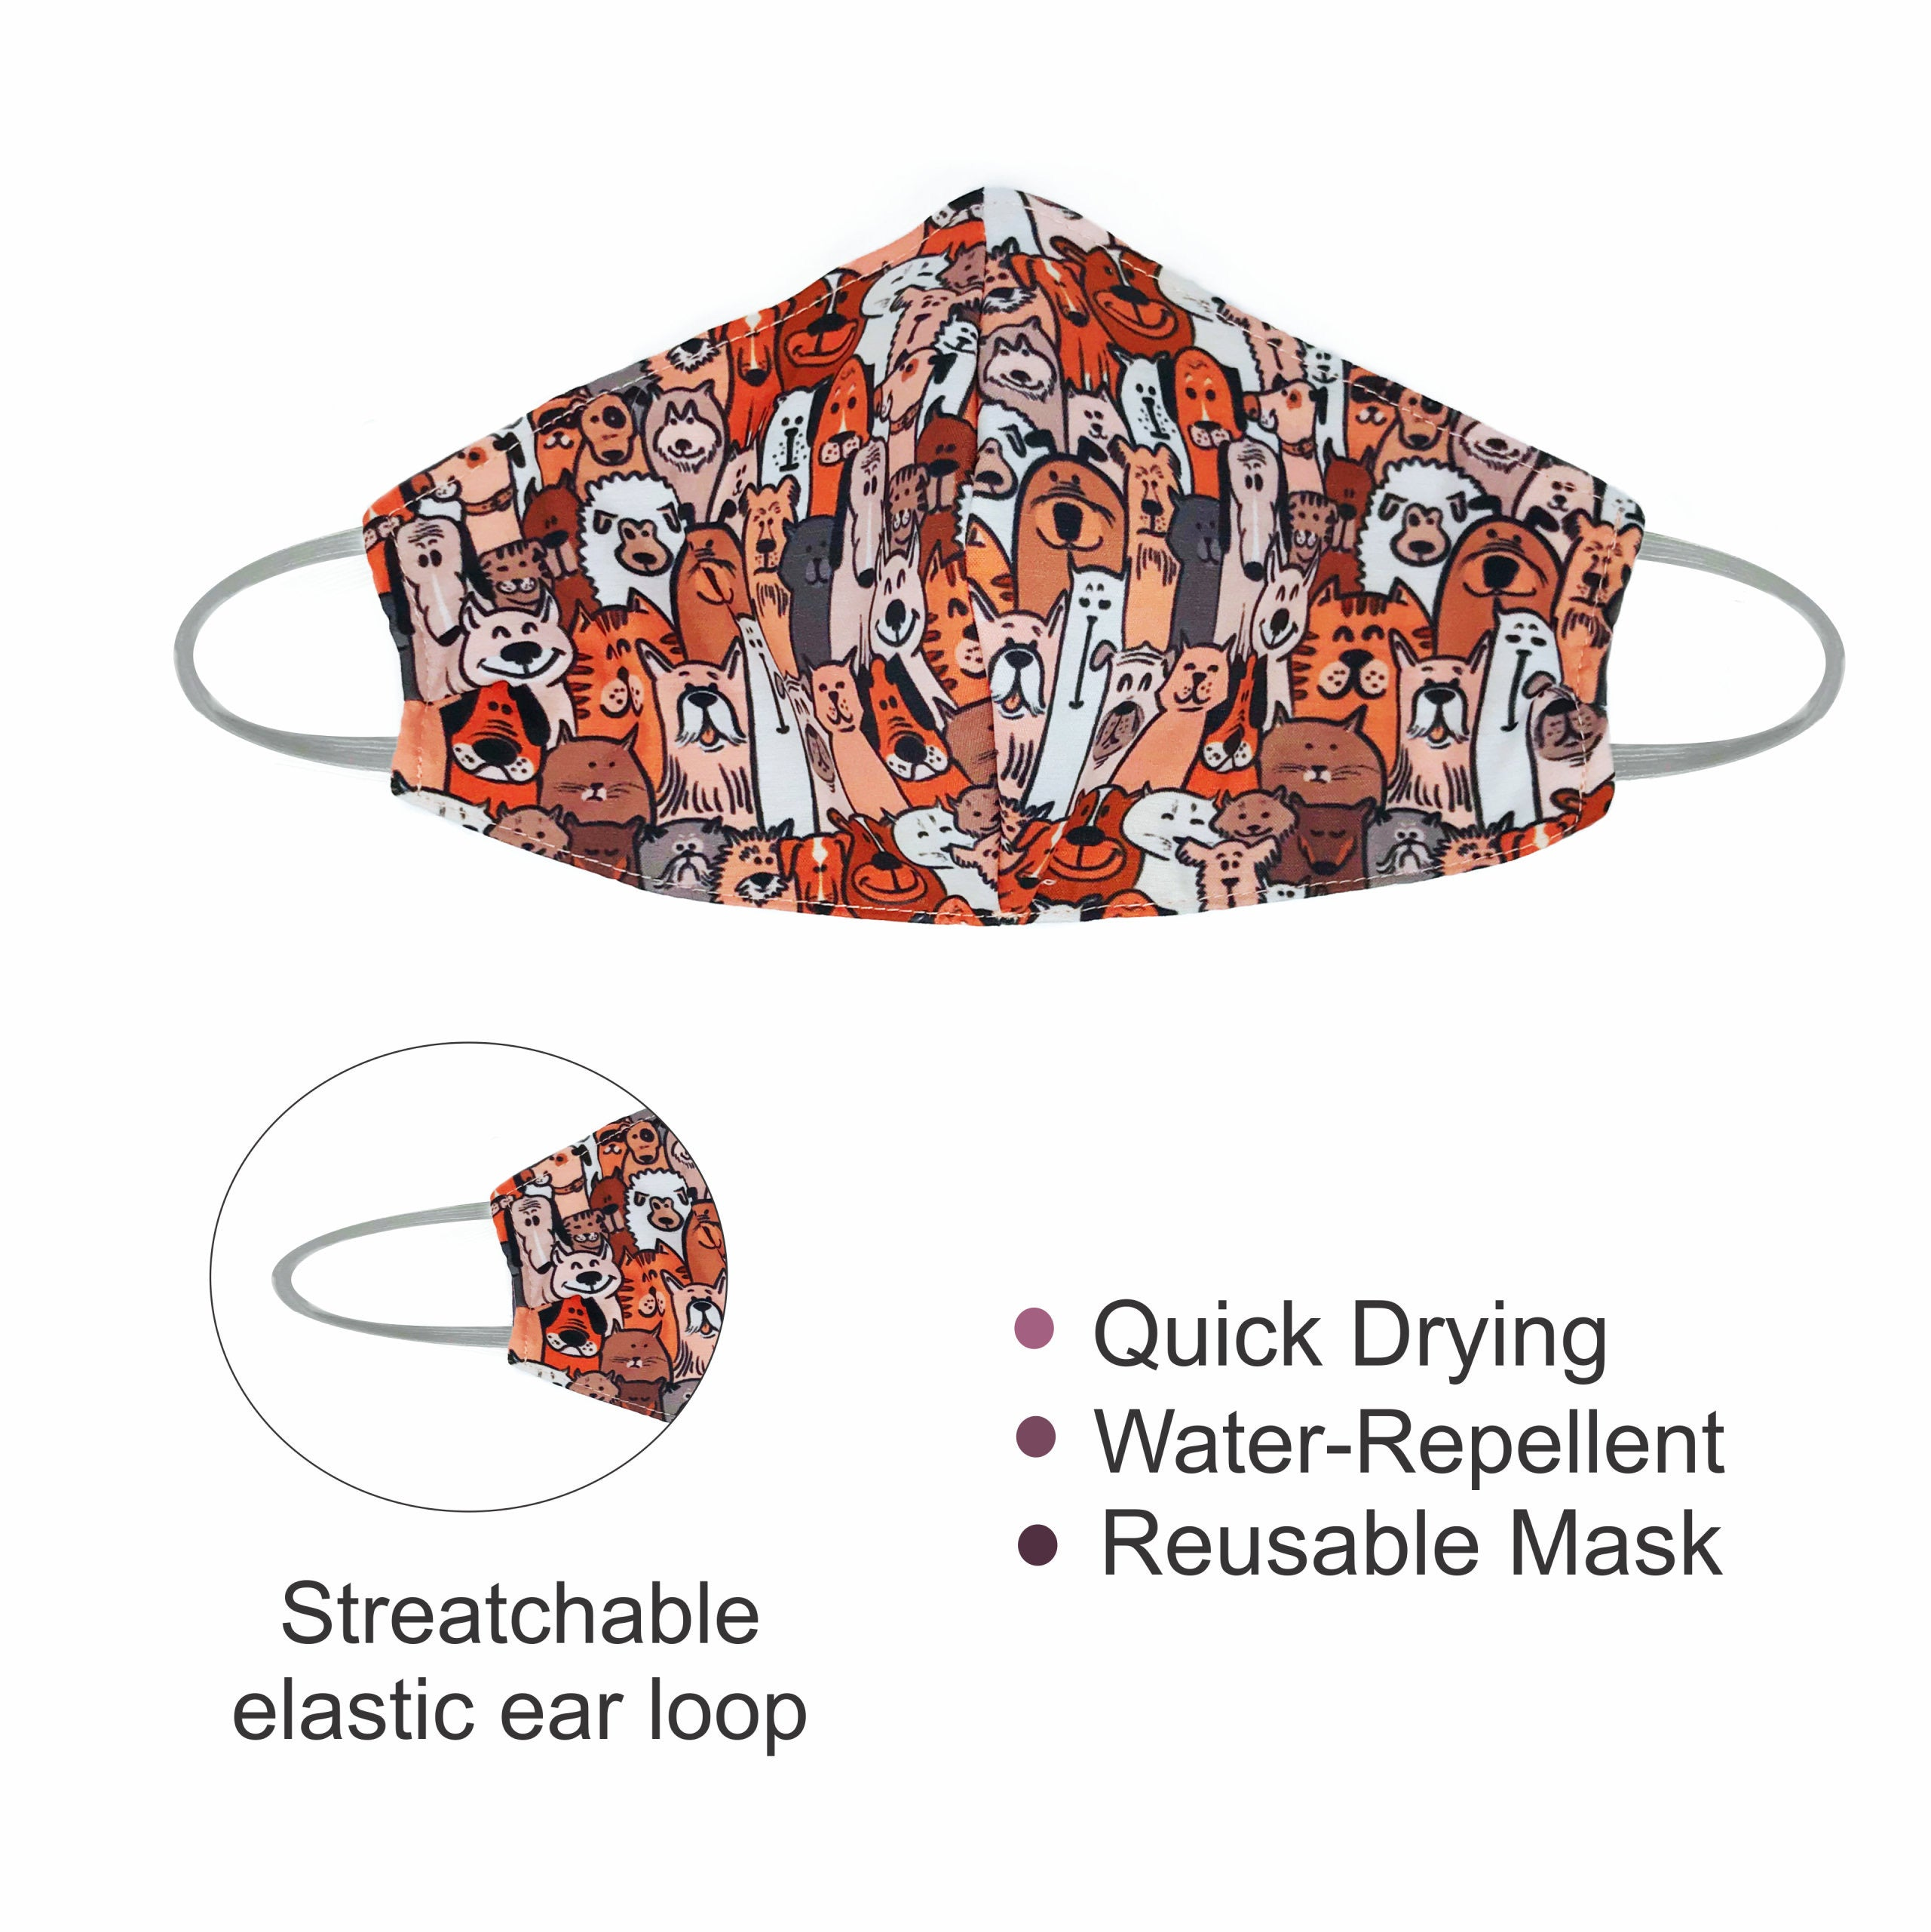 Reusable Mask - Polyester Blend (Water-Repellent) Dog lovers